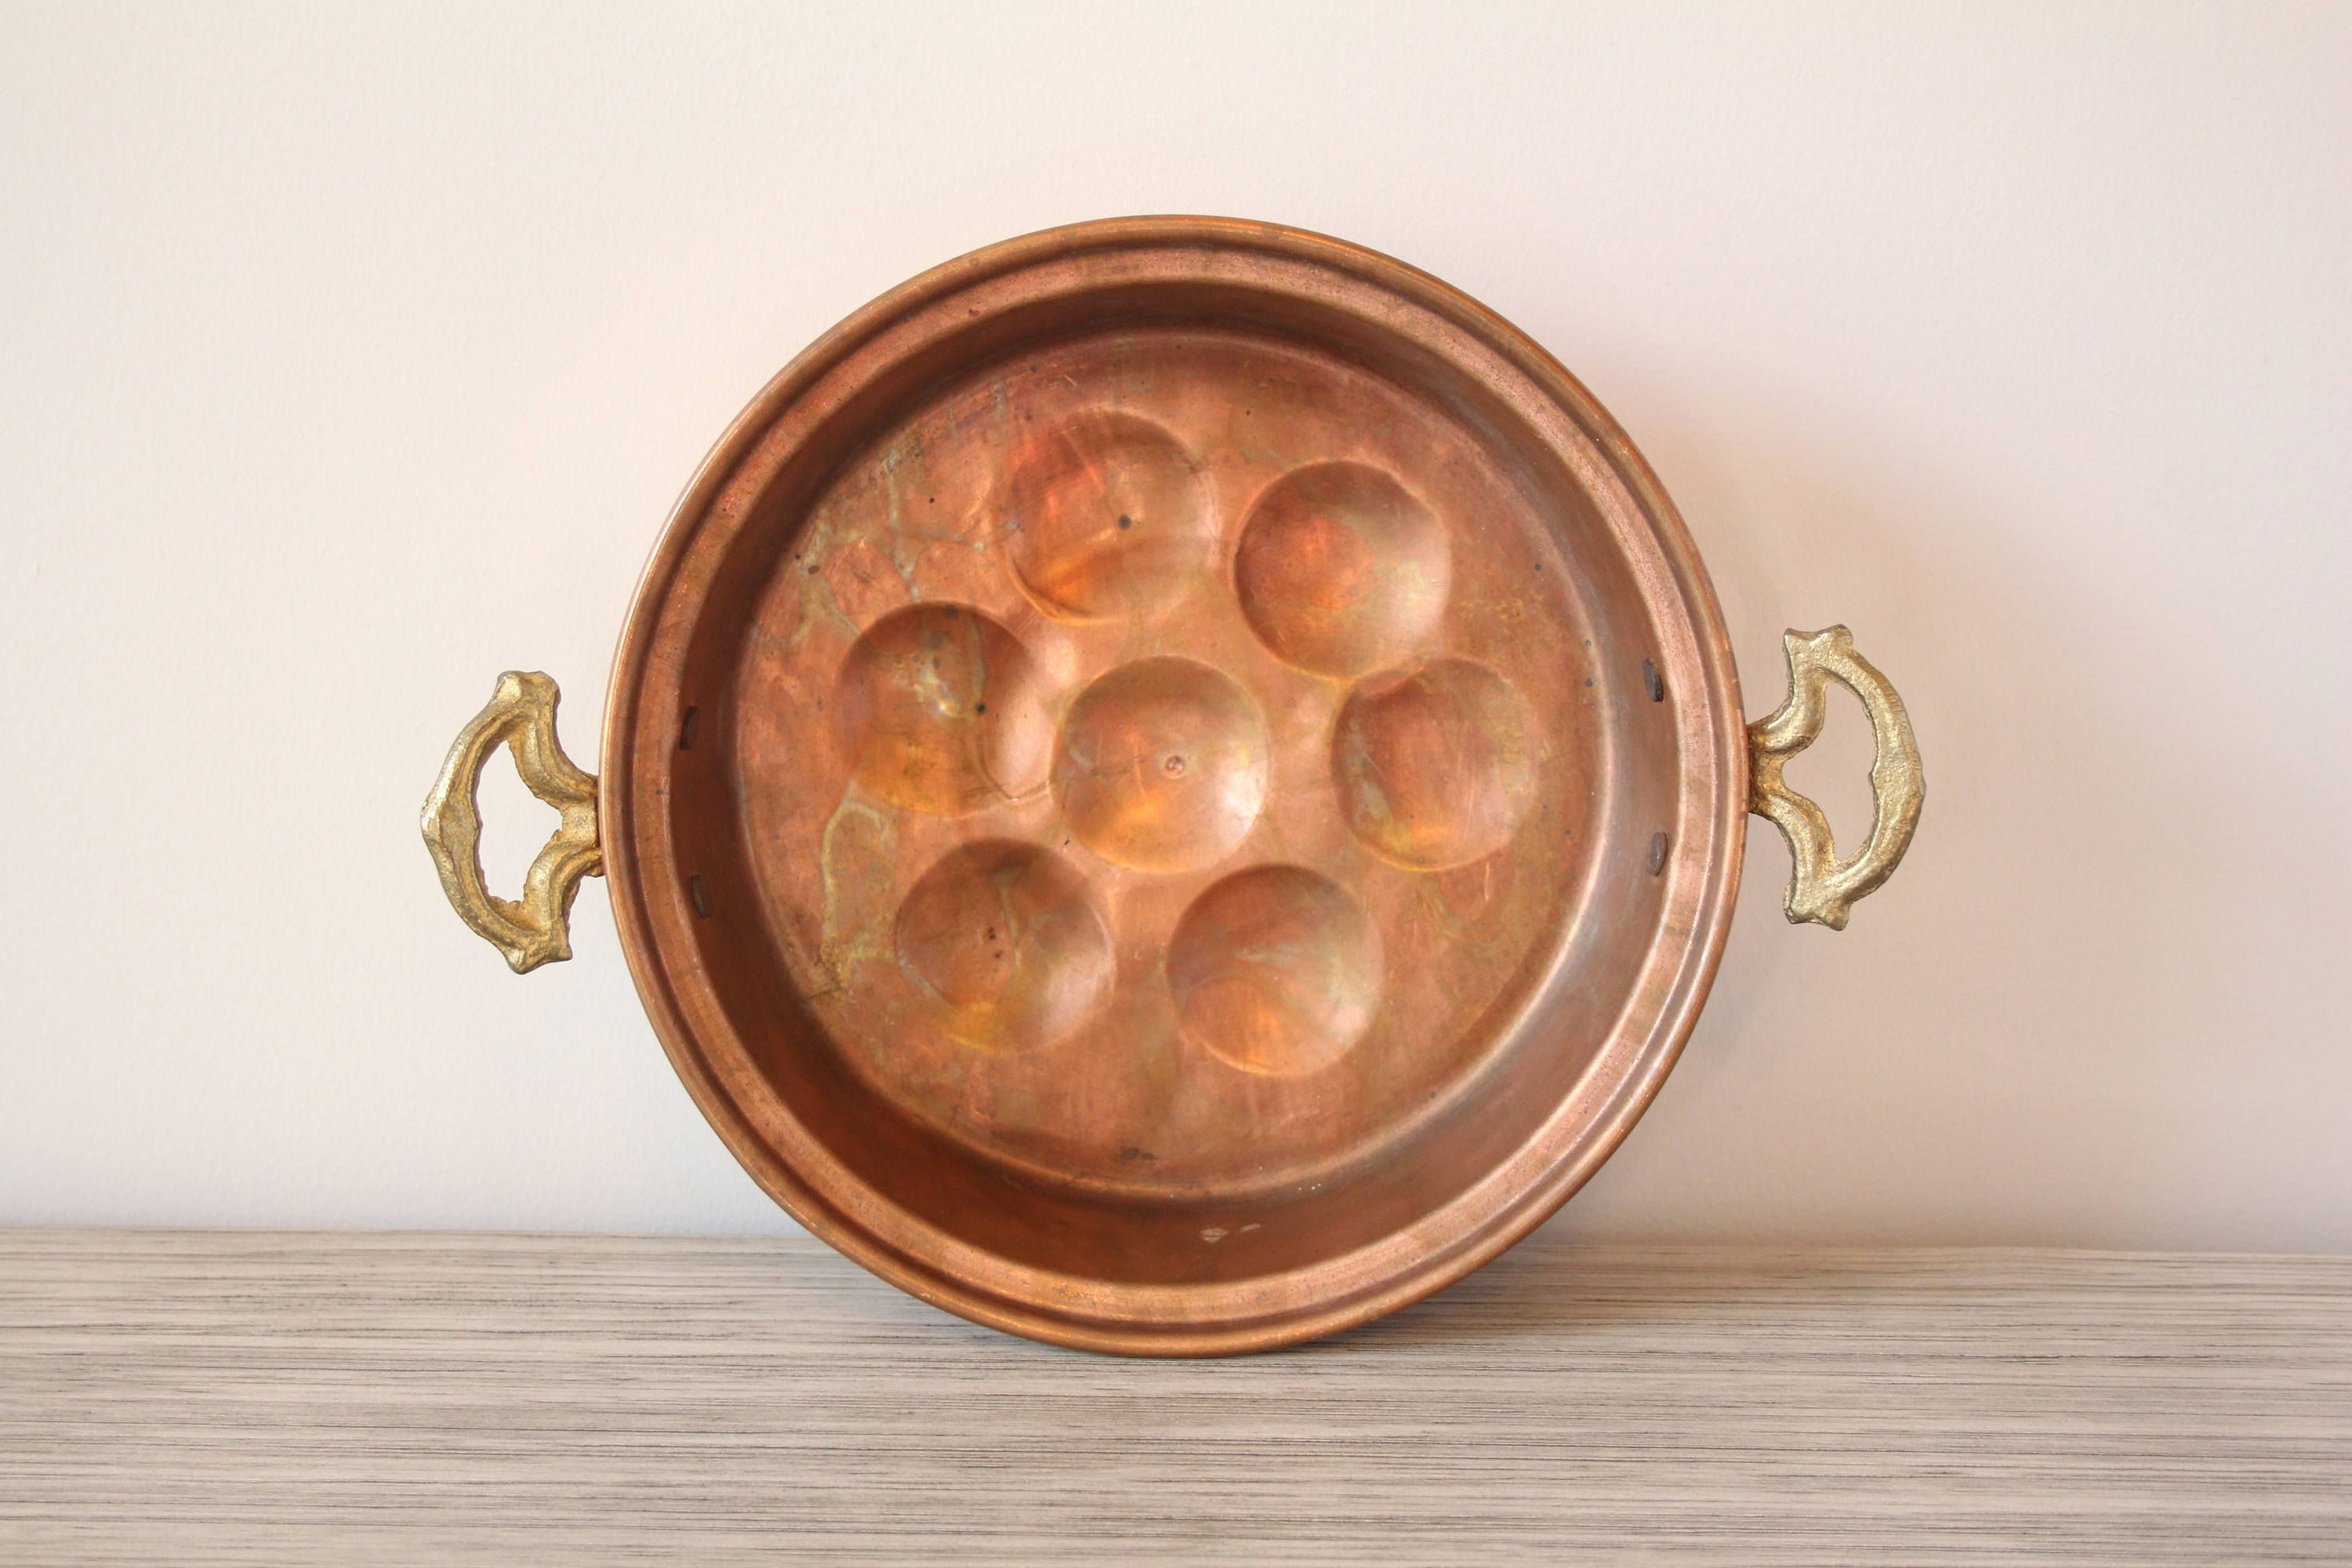 lovely Vintage Egg Poachers Part - 9: Vintage Copper Egg Poacher Pan Pot Kitchen Cooking Item Brass Handles Food  Cooking Serveware Round Wall Hanging Decorative Easter Display by ...